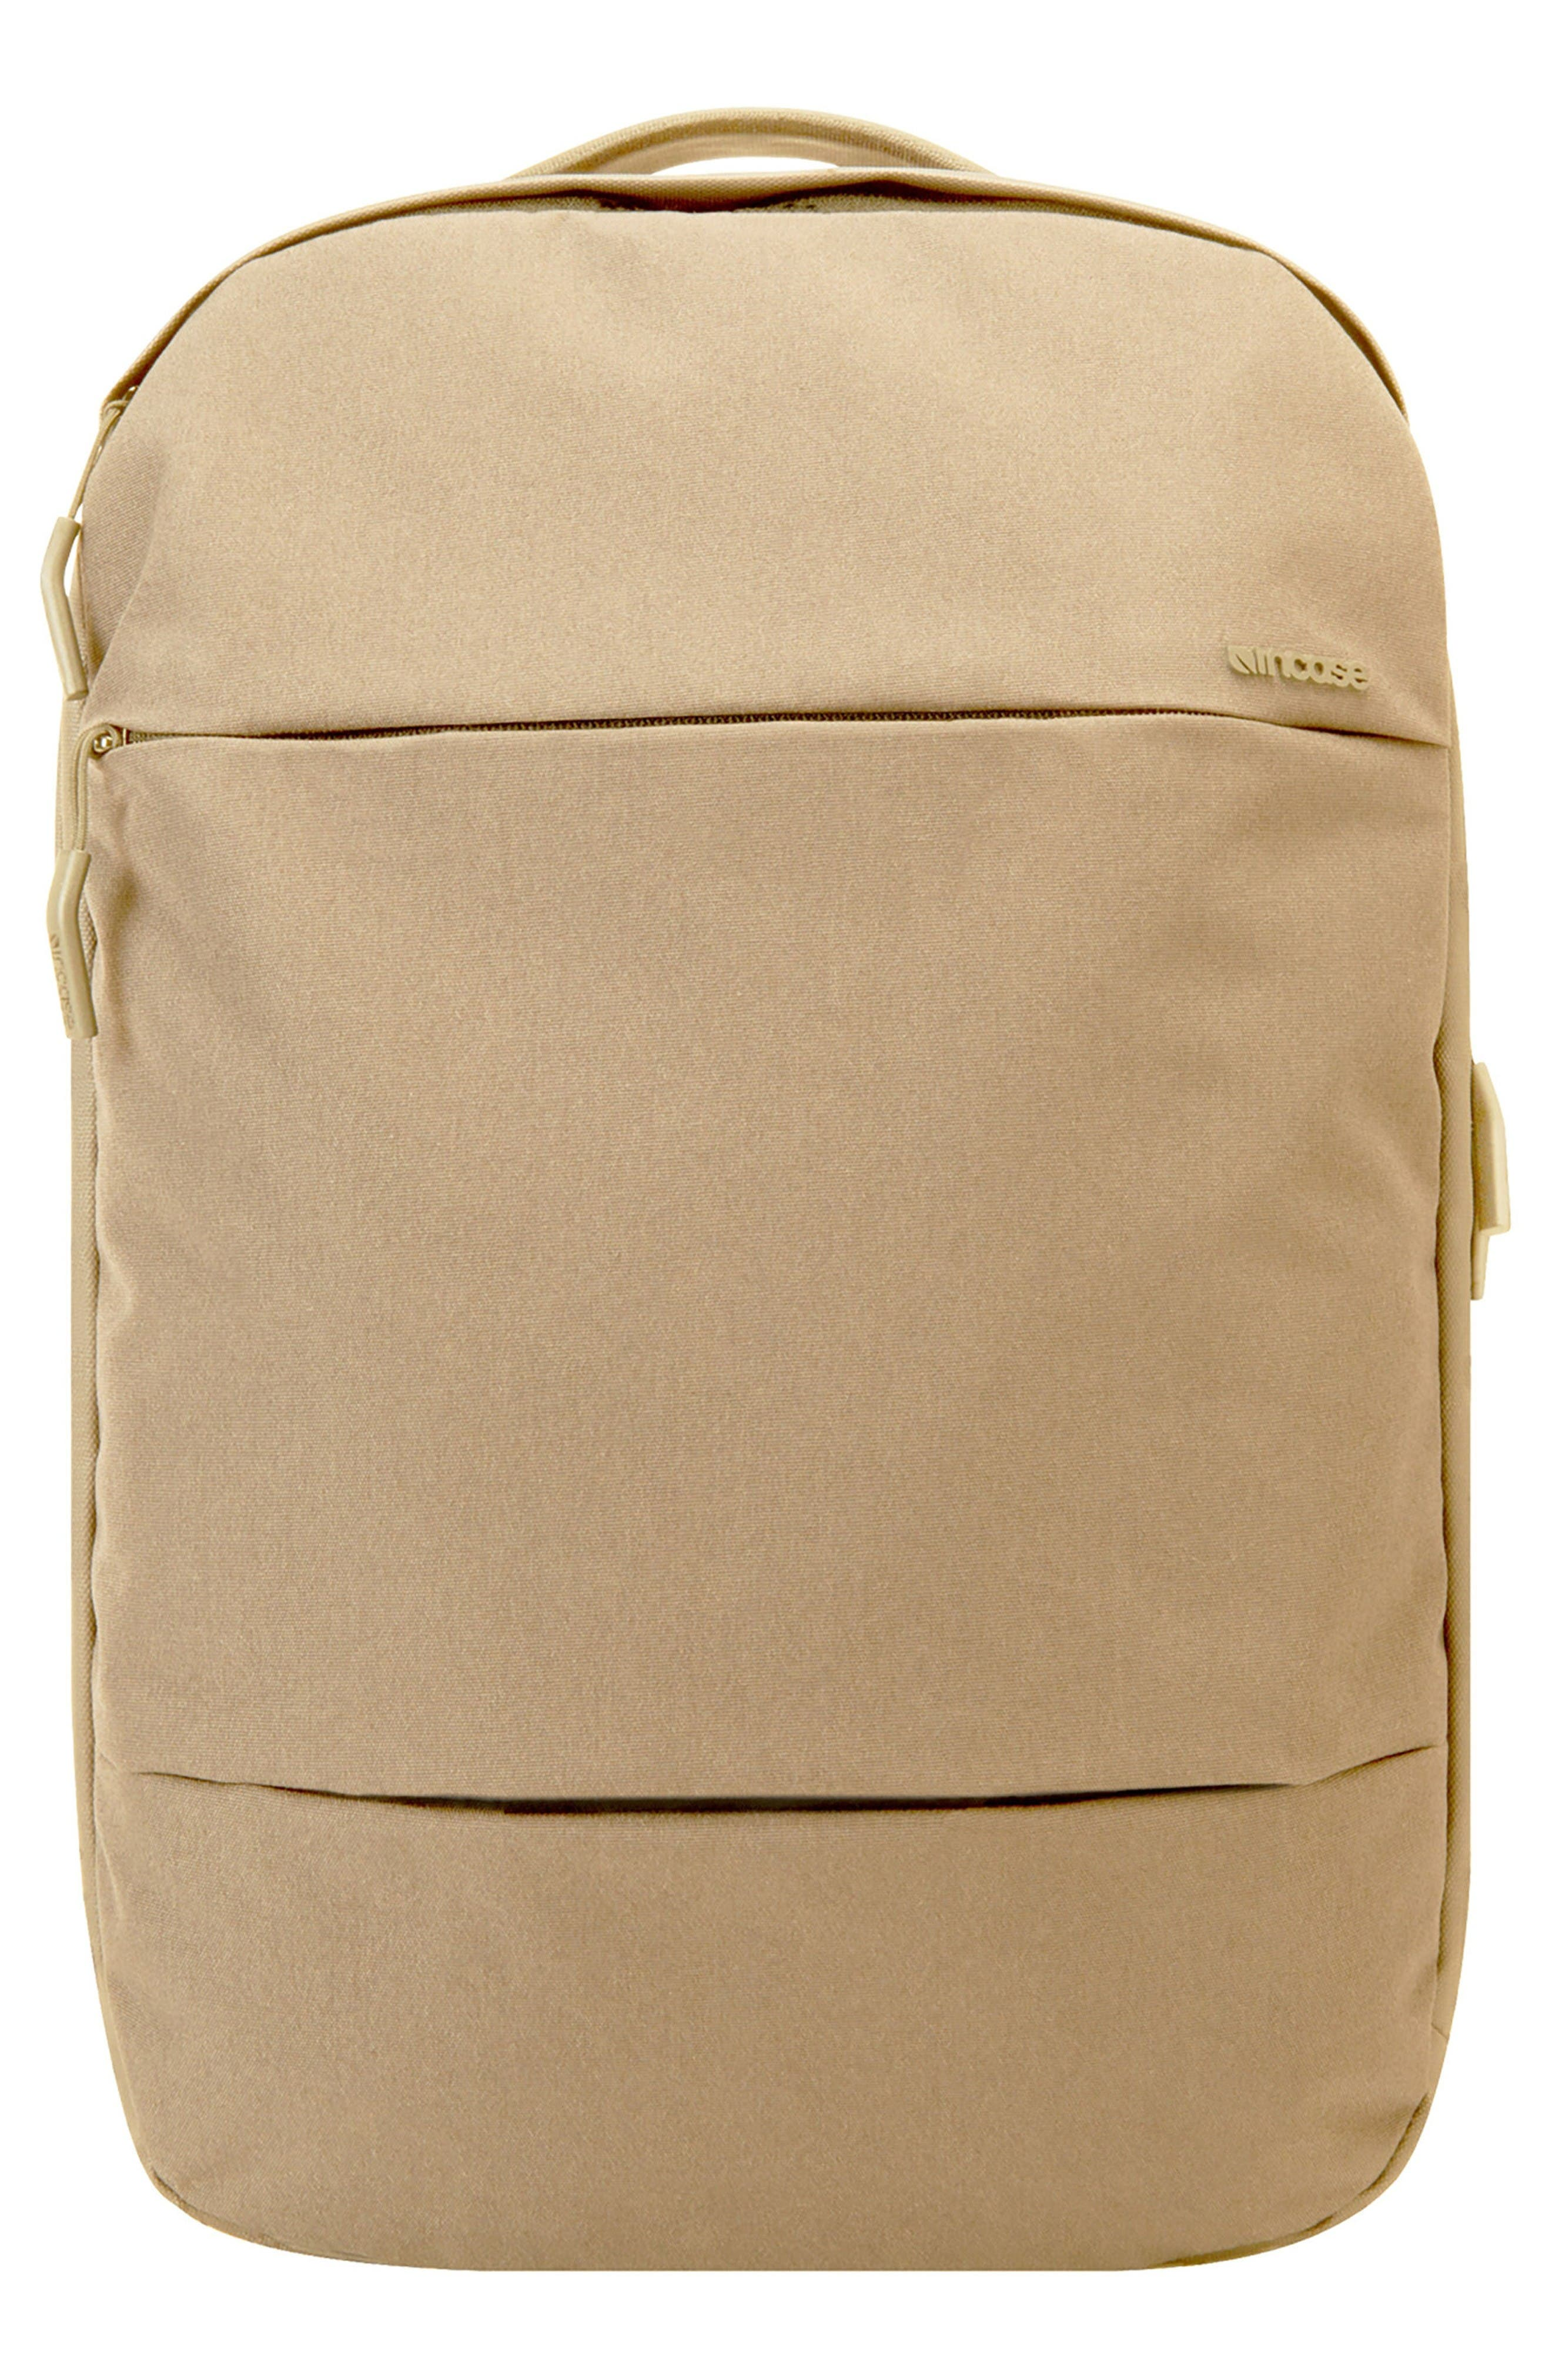 Incase Designs 'City' Compact Backpack